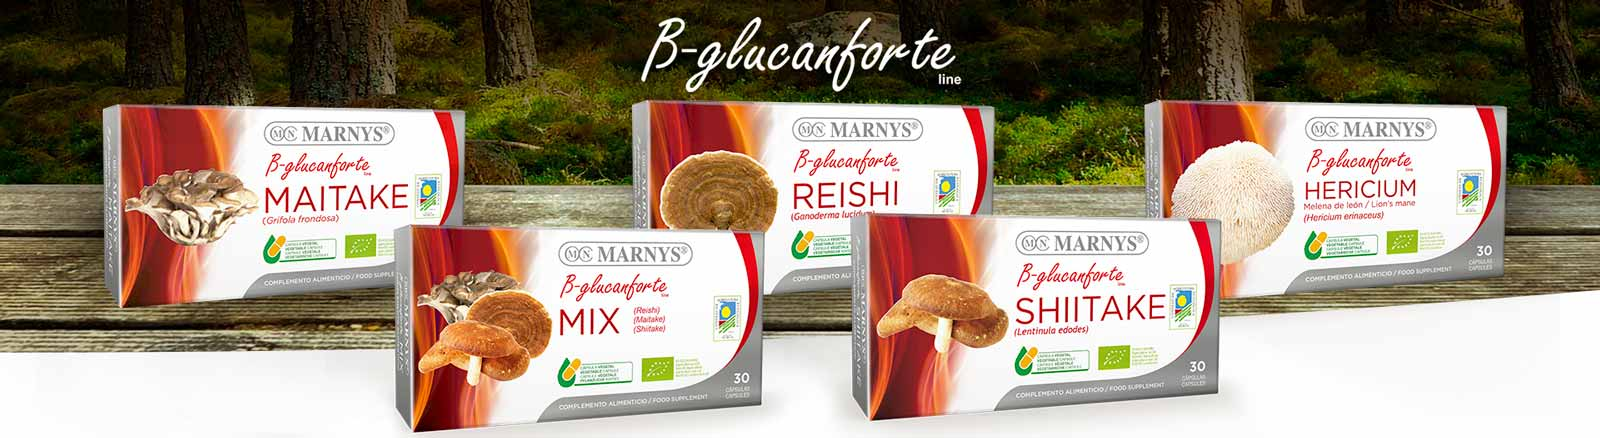 TRADITION, PURITY AND WELL-BEING. DISCOVER OUR SELECTION OF MUSHROOMS